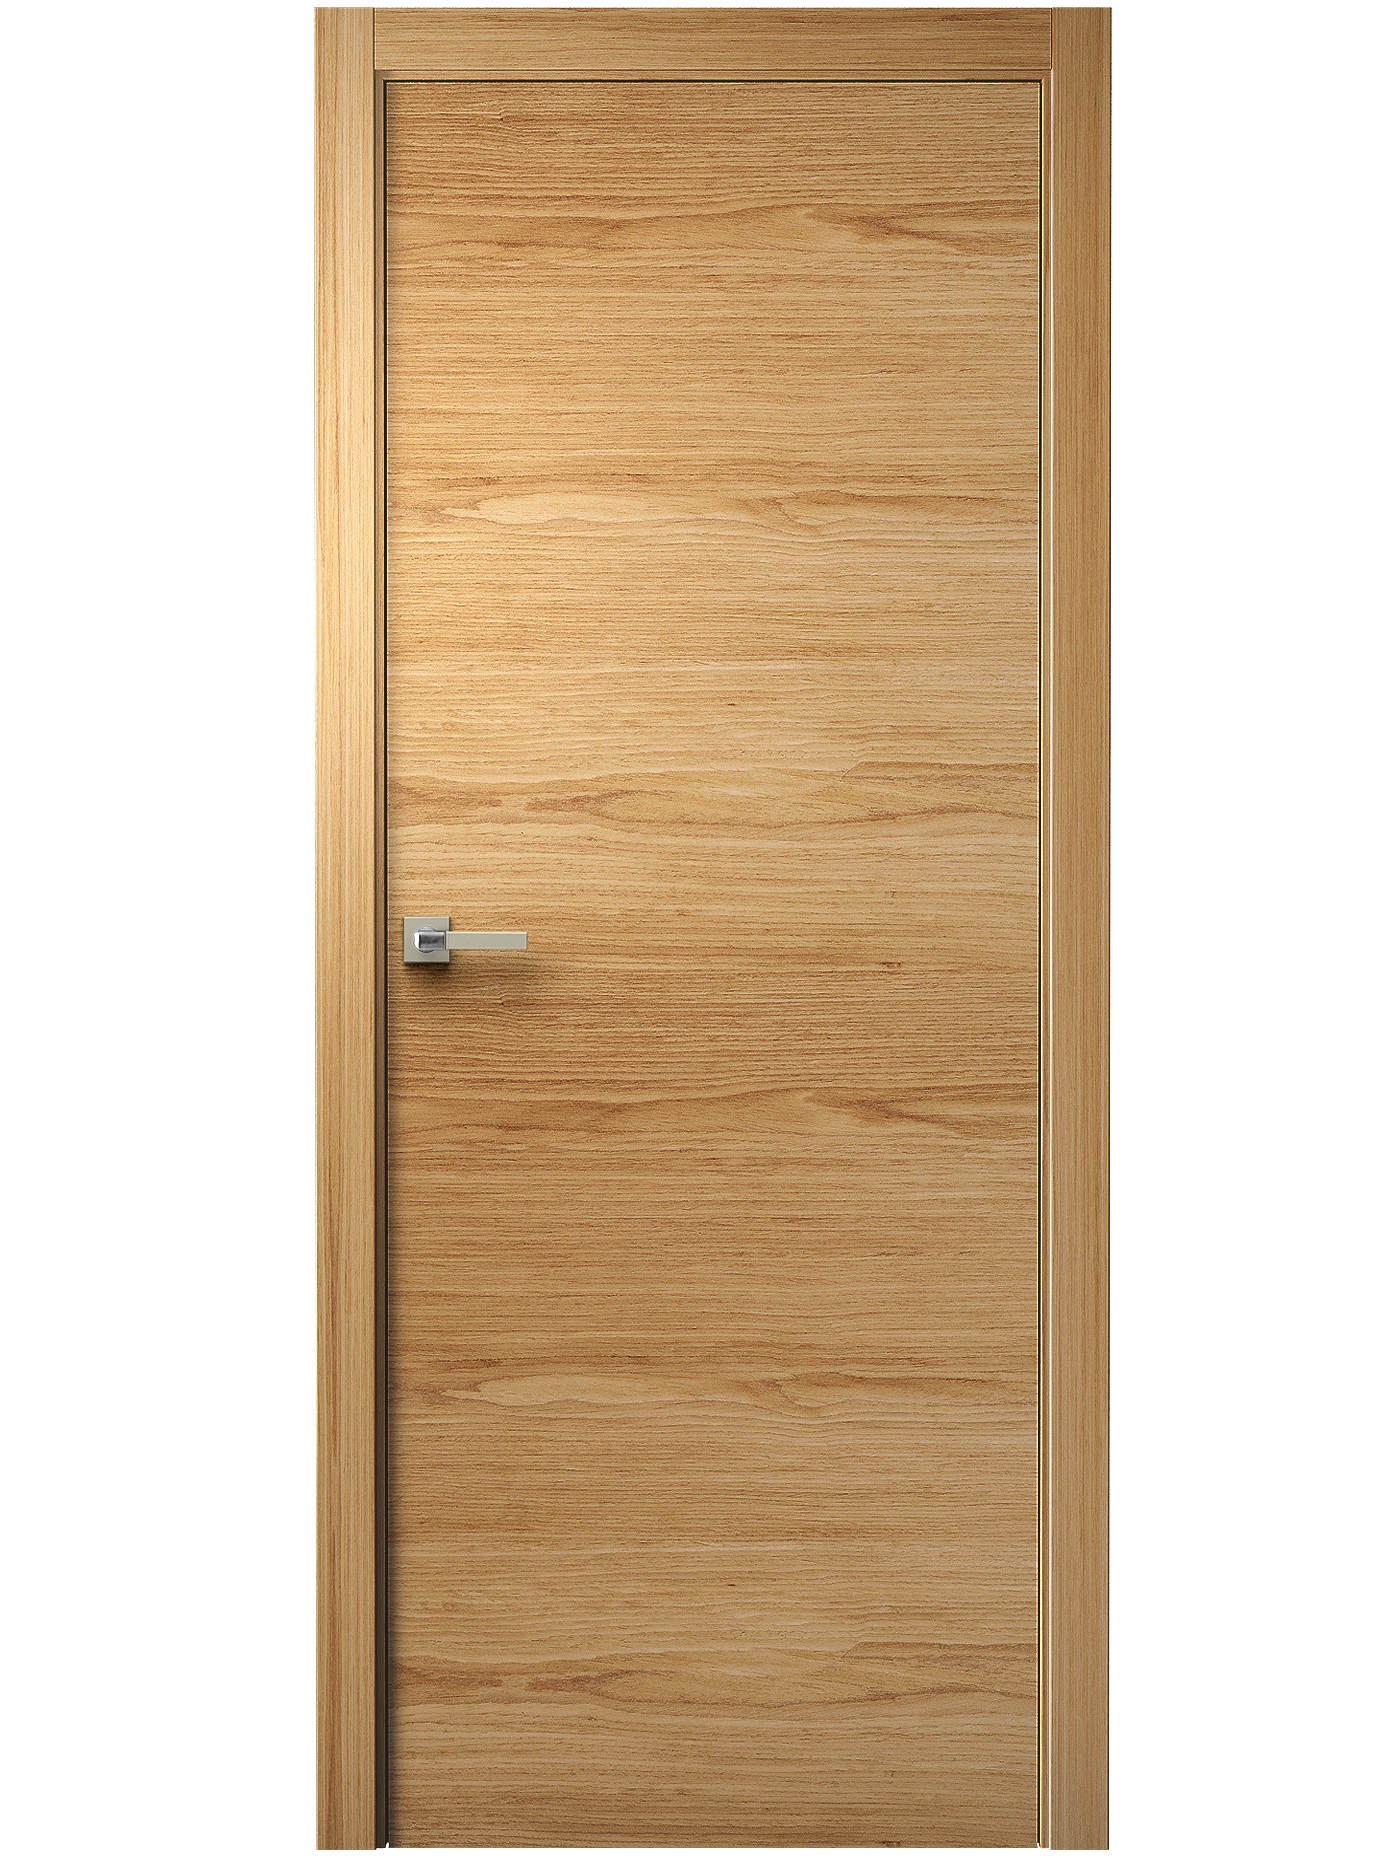 Image Sana Interior Door Natural Oak 0